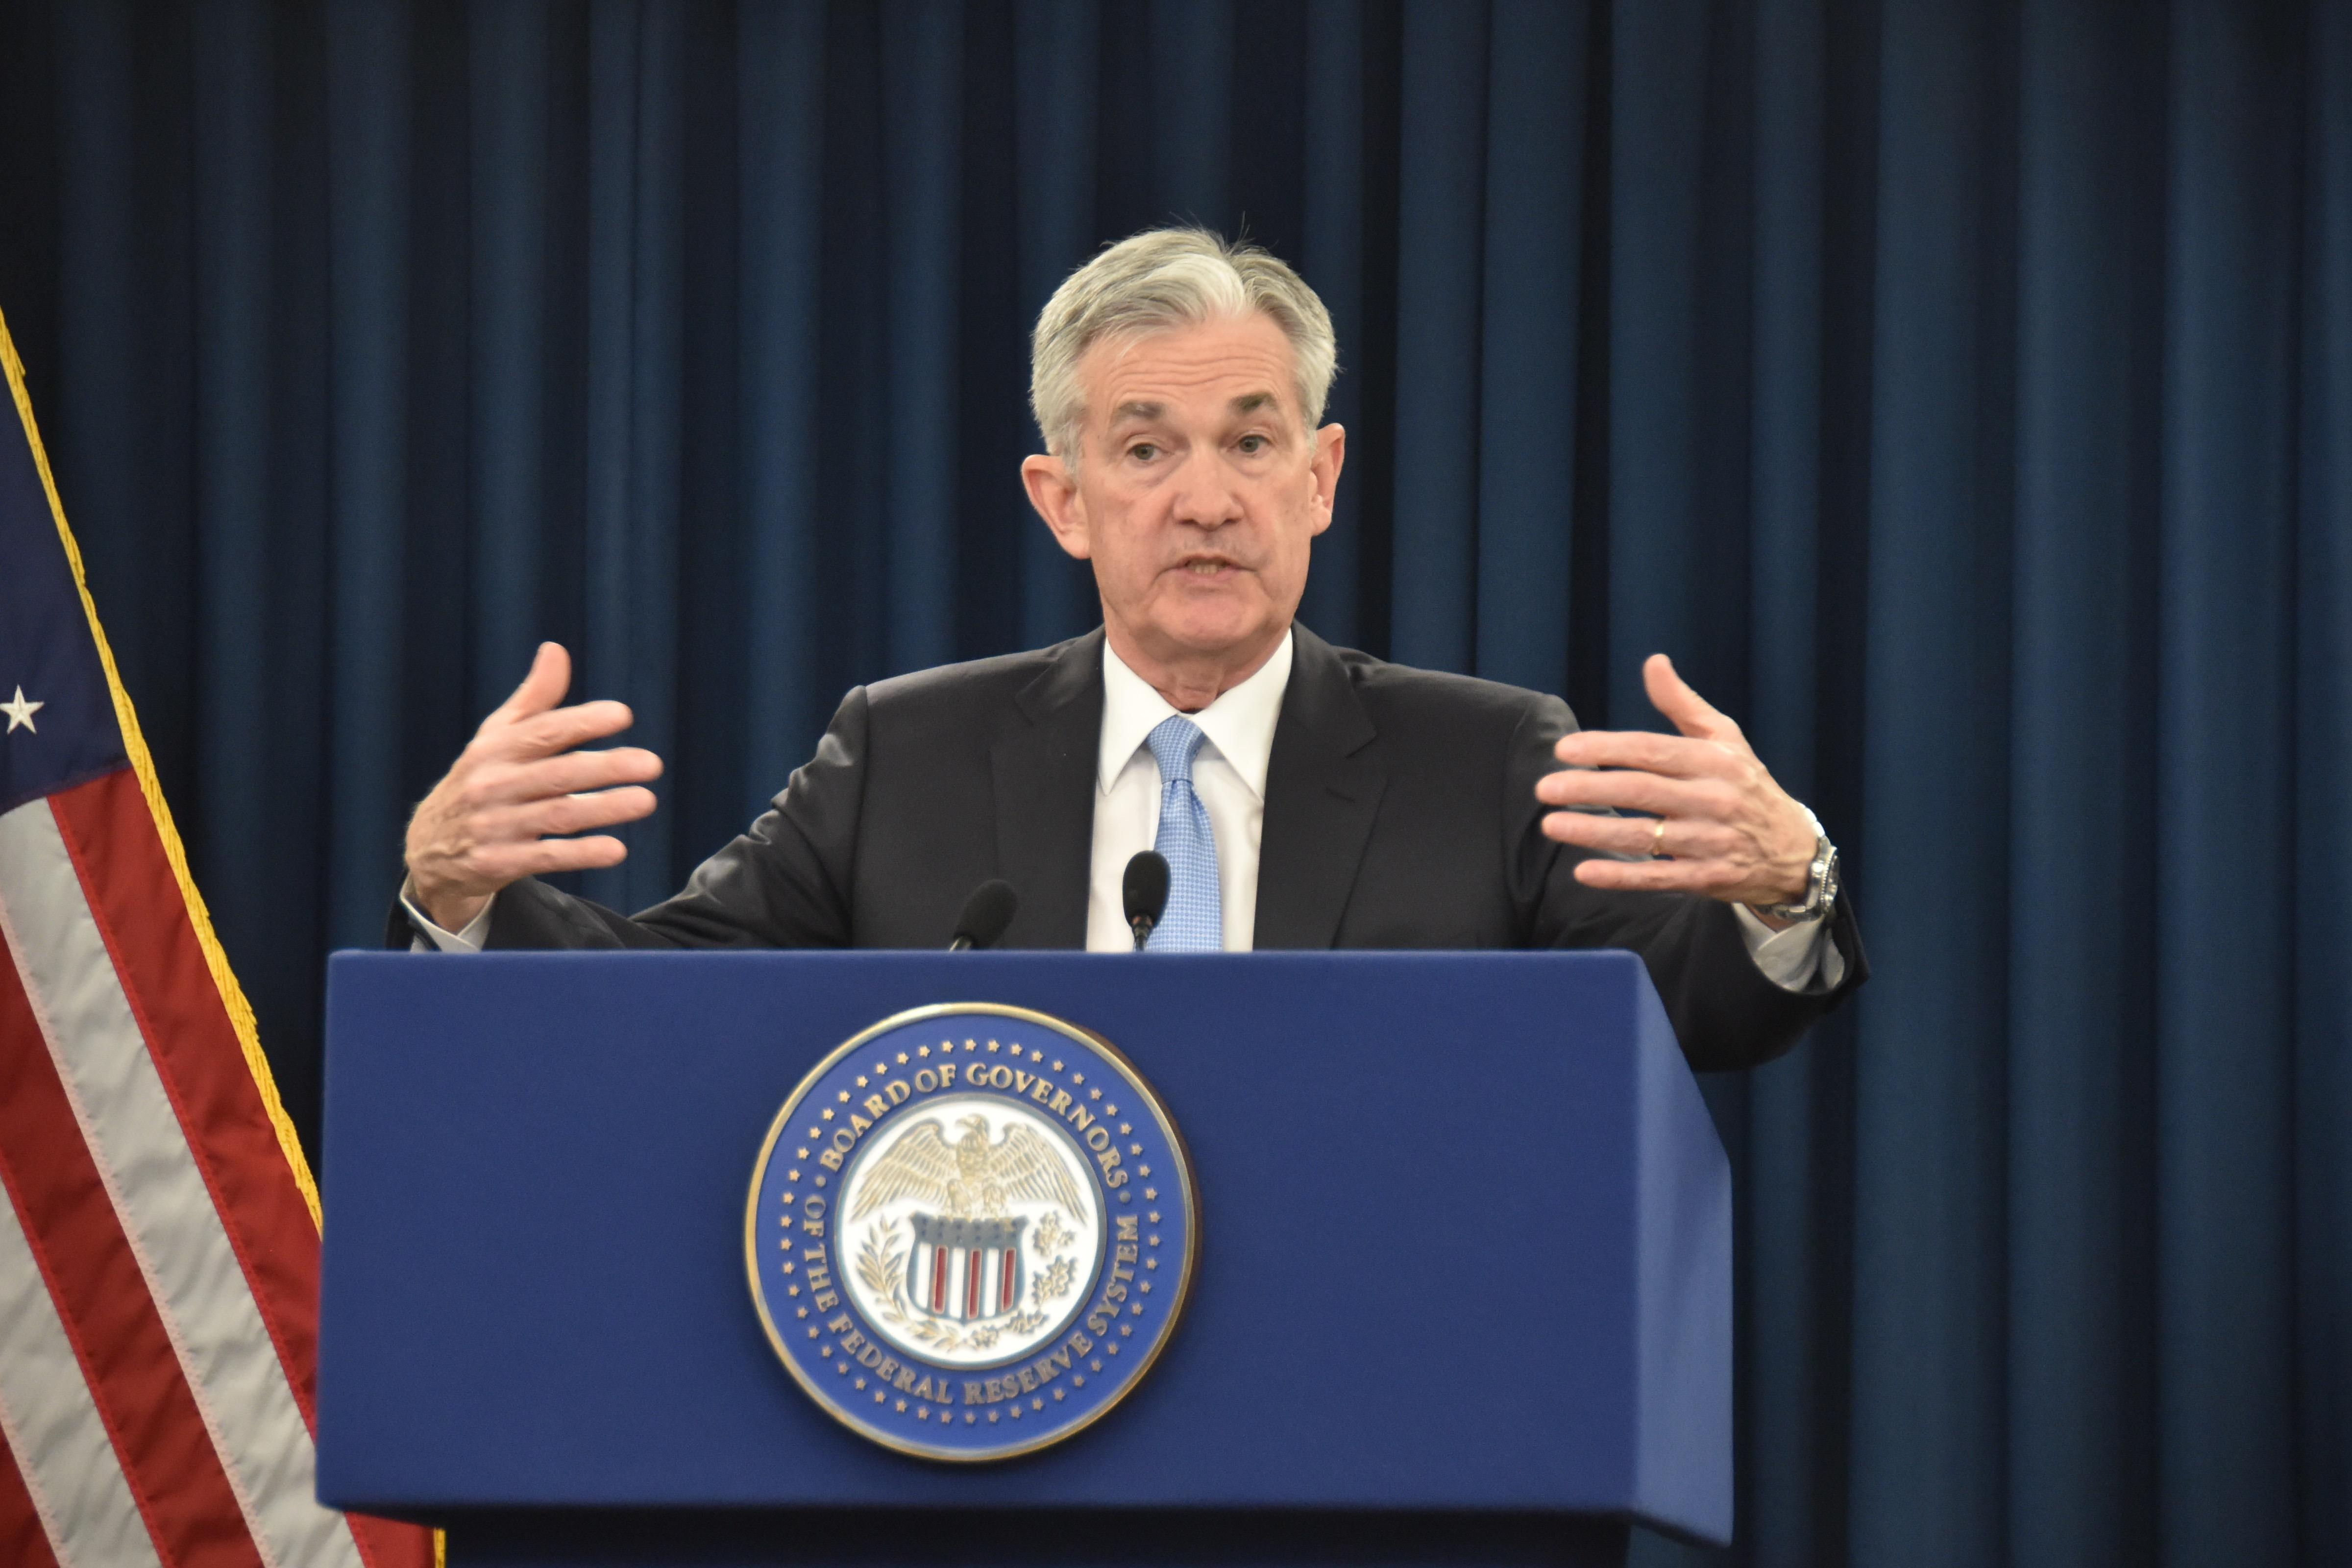 U.S. Federal Reserve Chairman Jerome Powell Holds News Conference